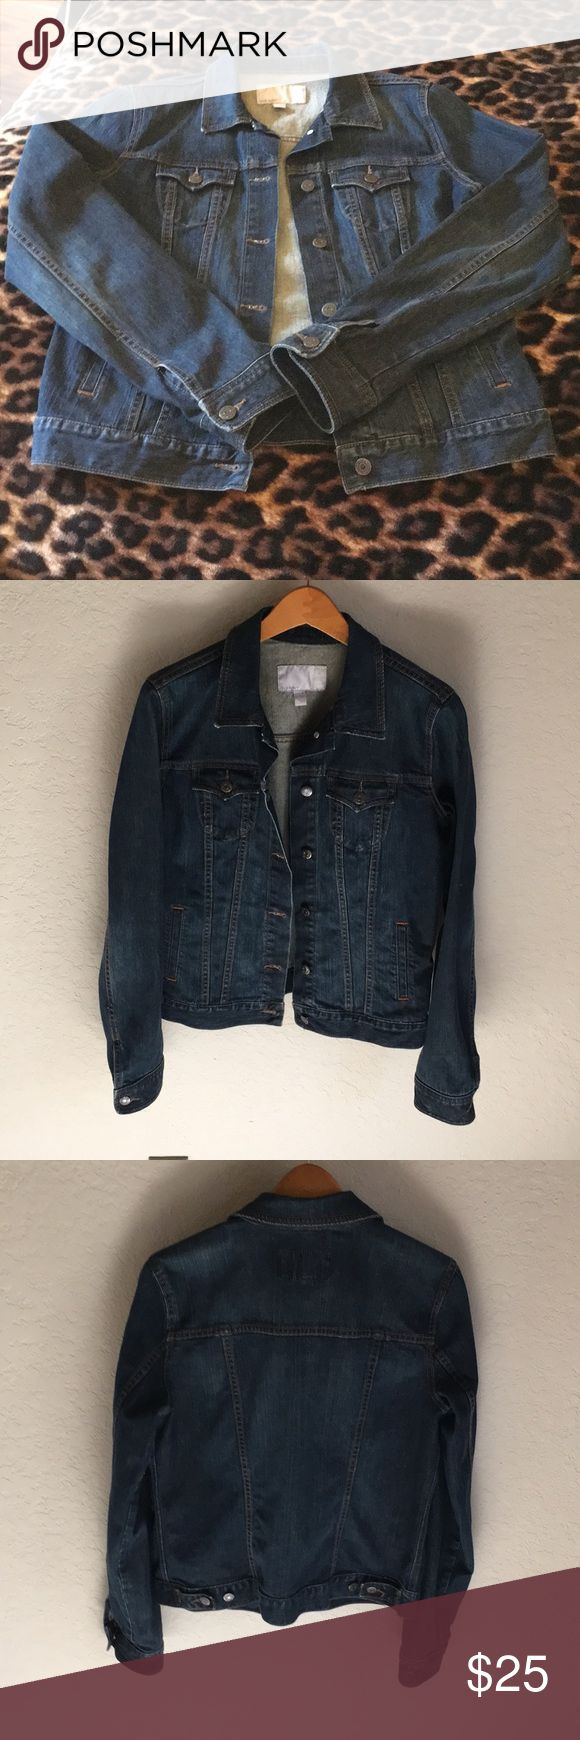 NWOT Old Navy Jean Jacket NWOT Old Navy Jean Jacket! Excellent condition! Never worn! Old Navy Jackets & Coats Jean Jackets